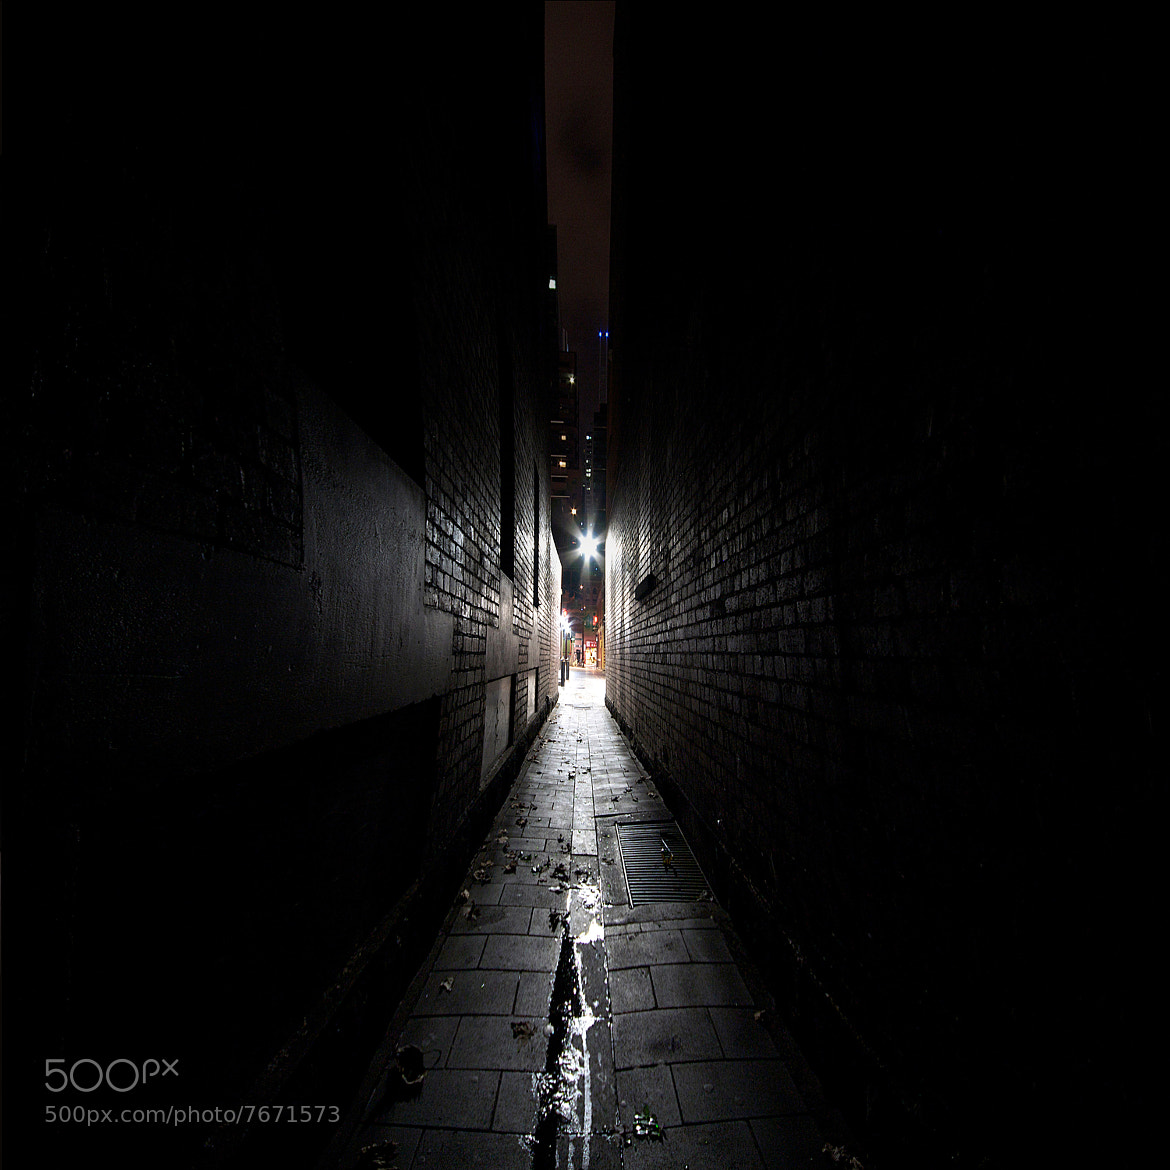 Photograph walk this way by Shady ezz on 500px